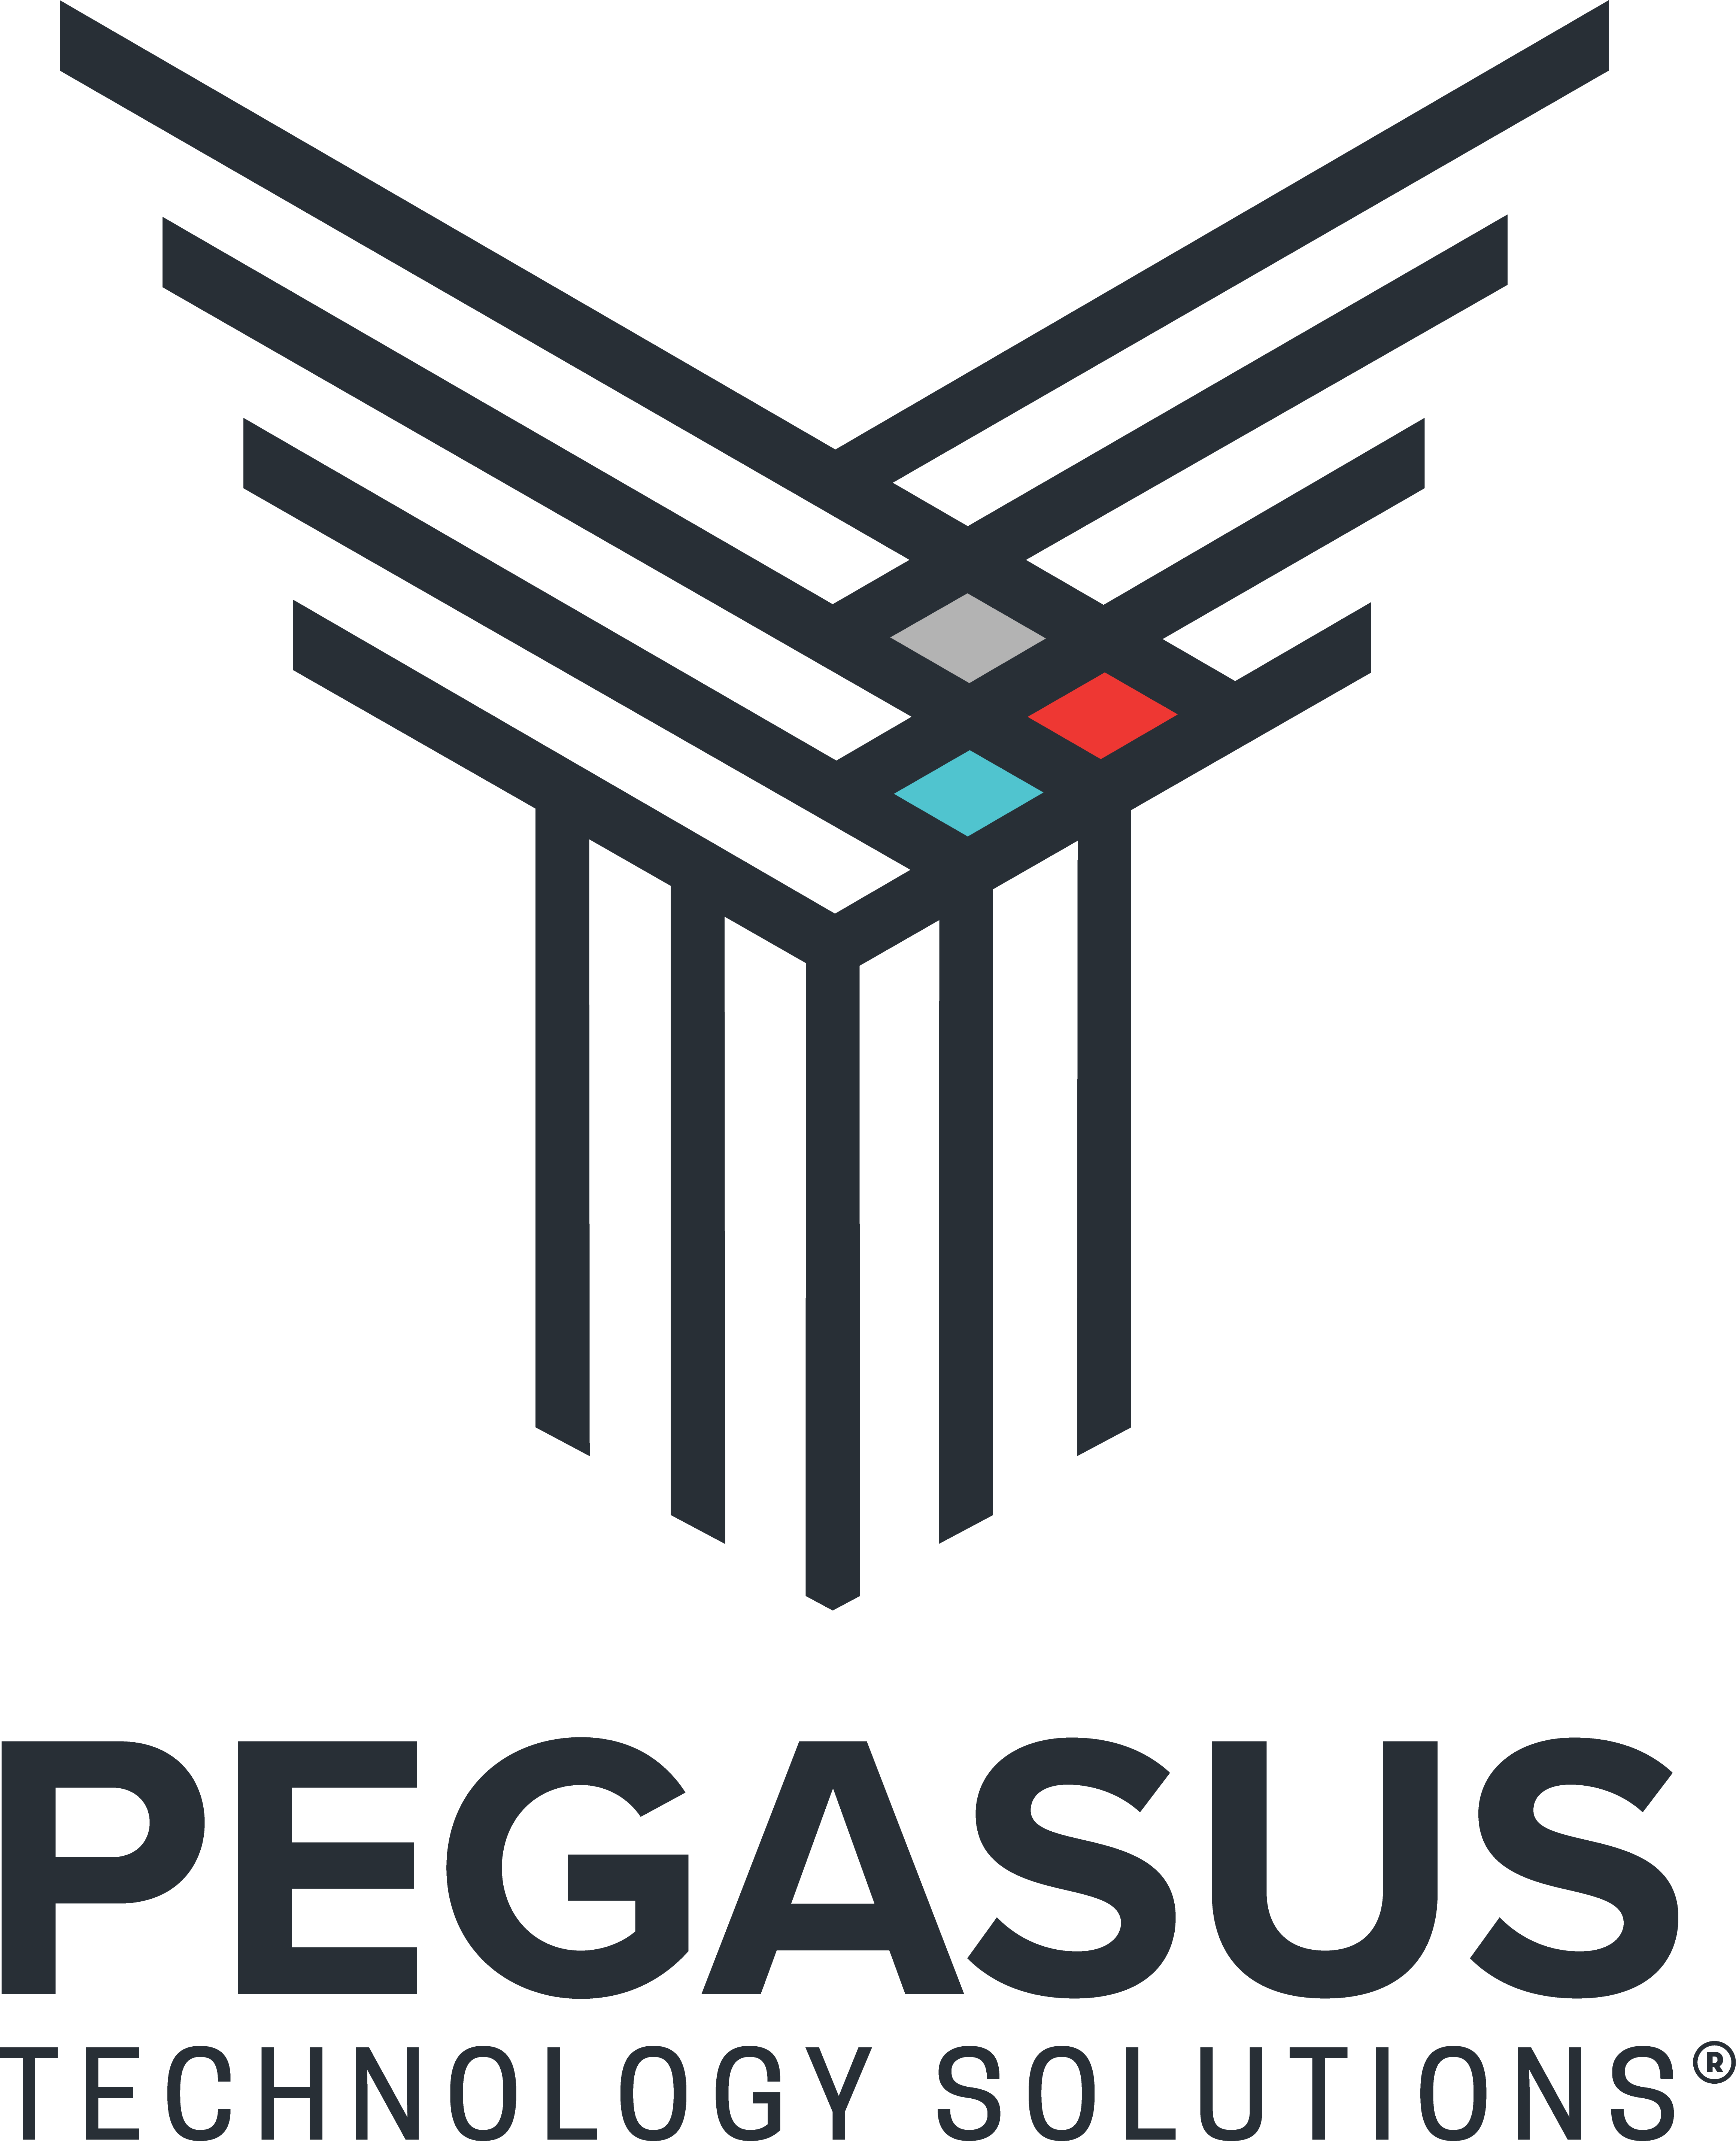 Pegasus Technology Solutions